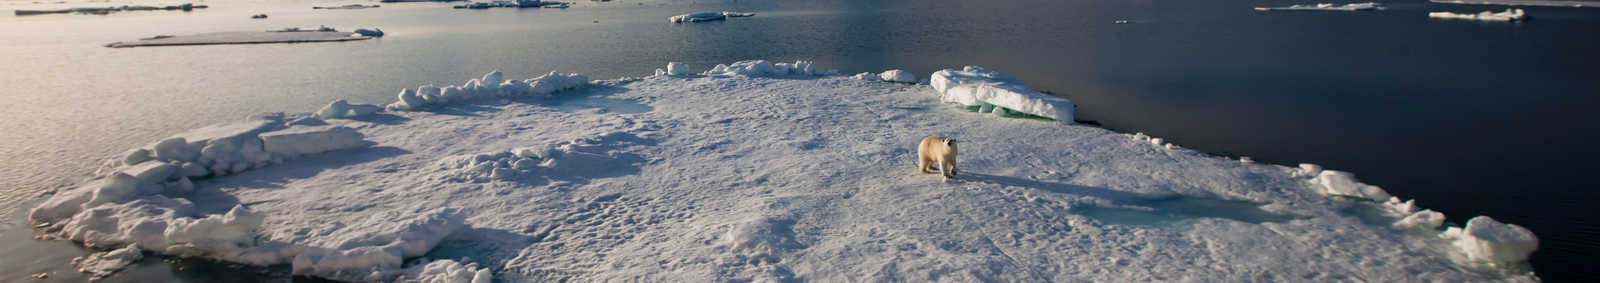 Polar bear on ice, Arctic